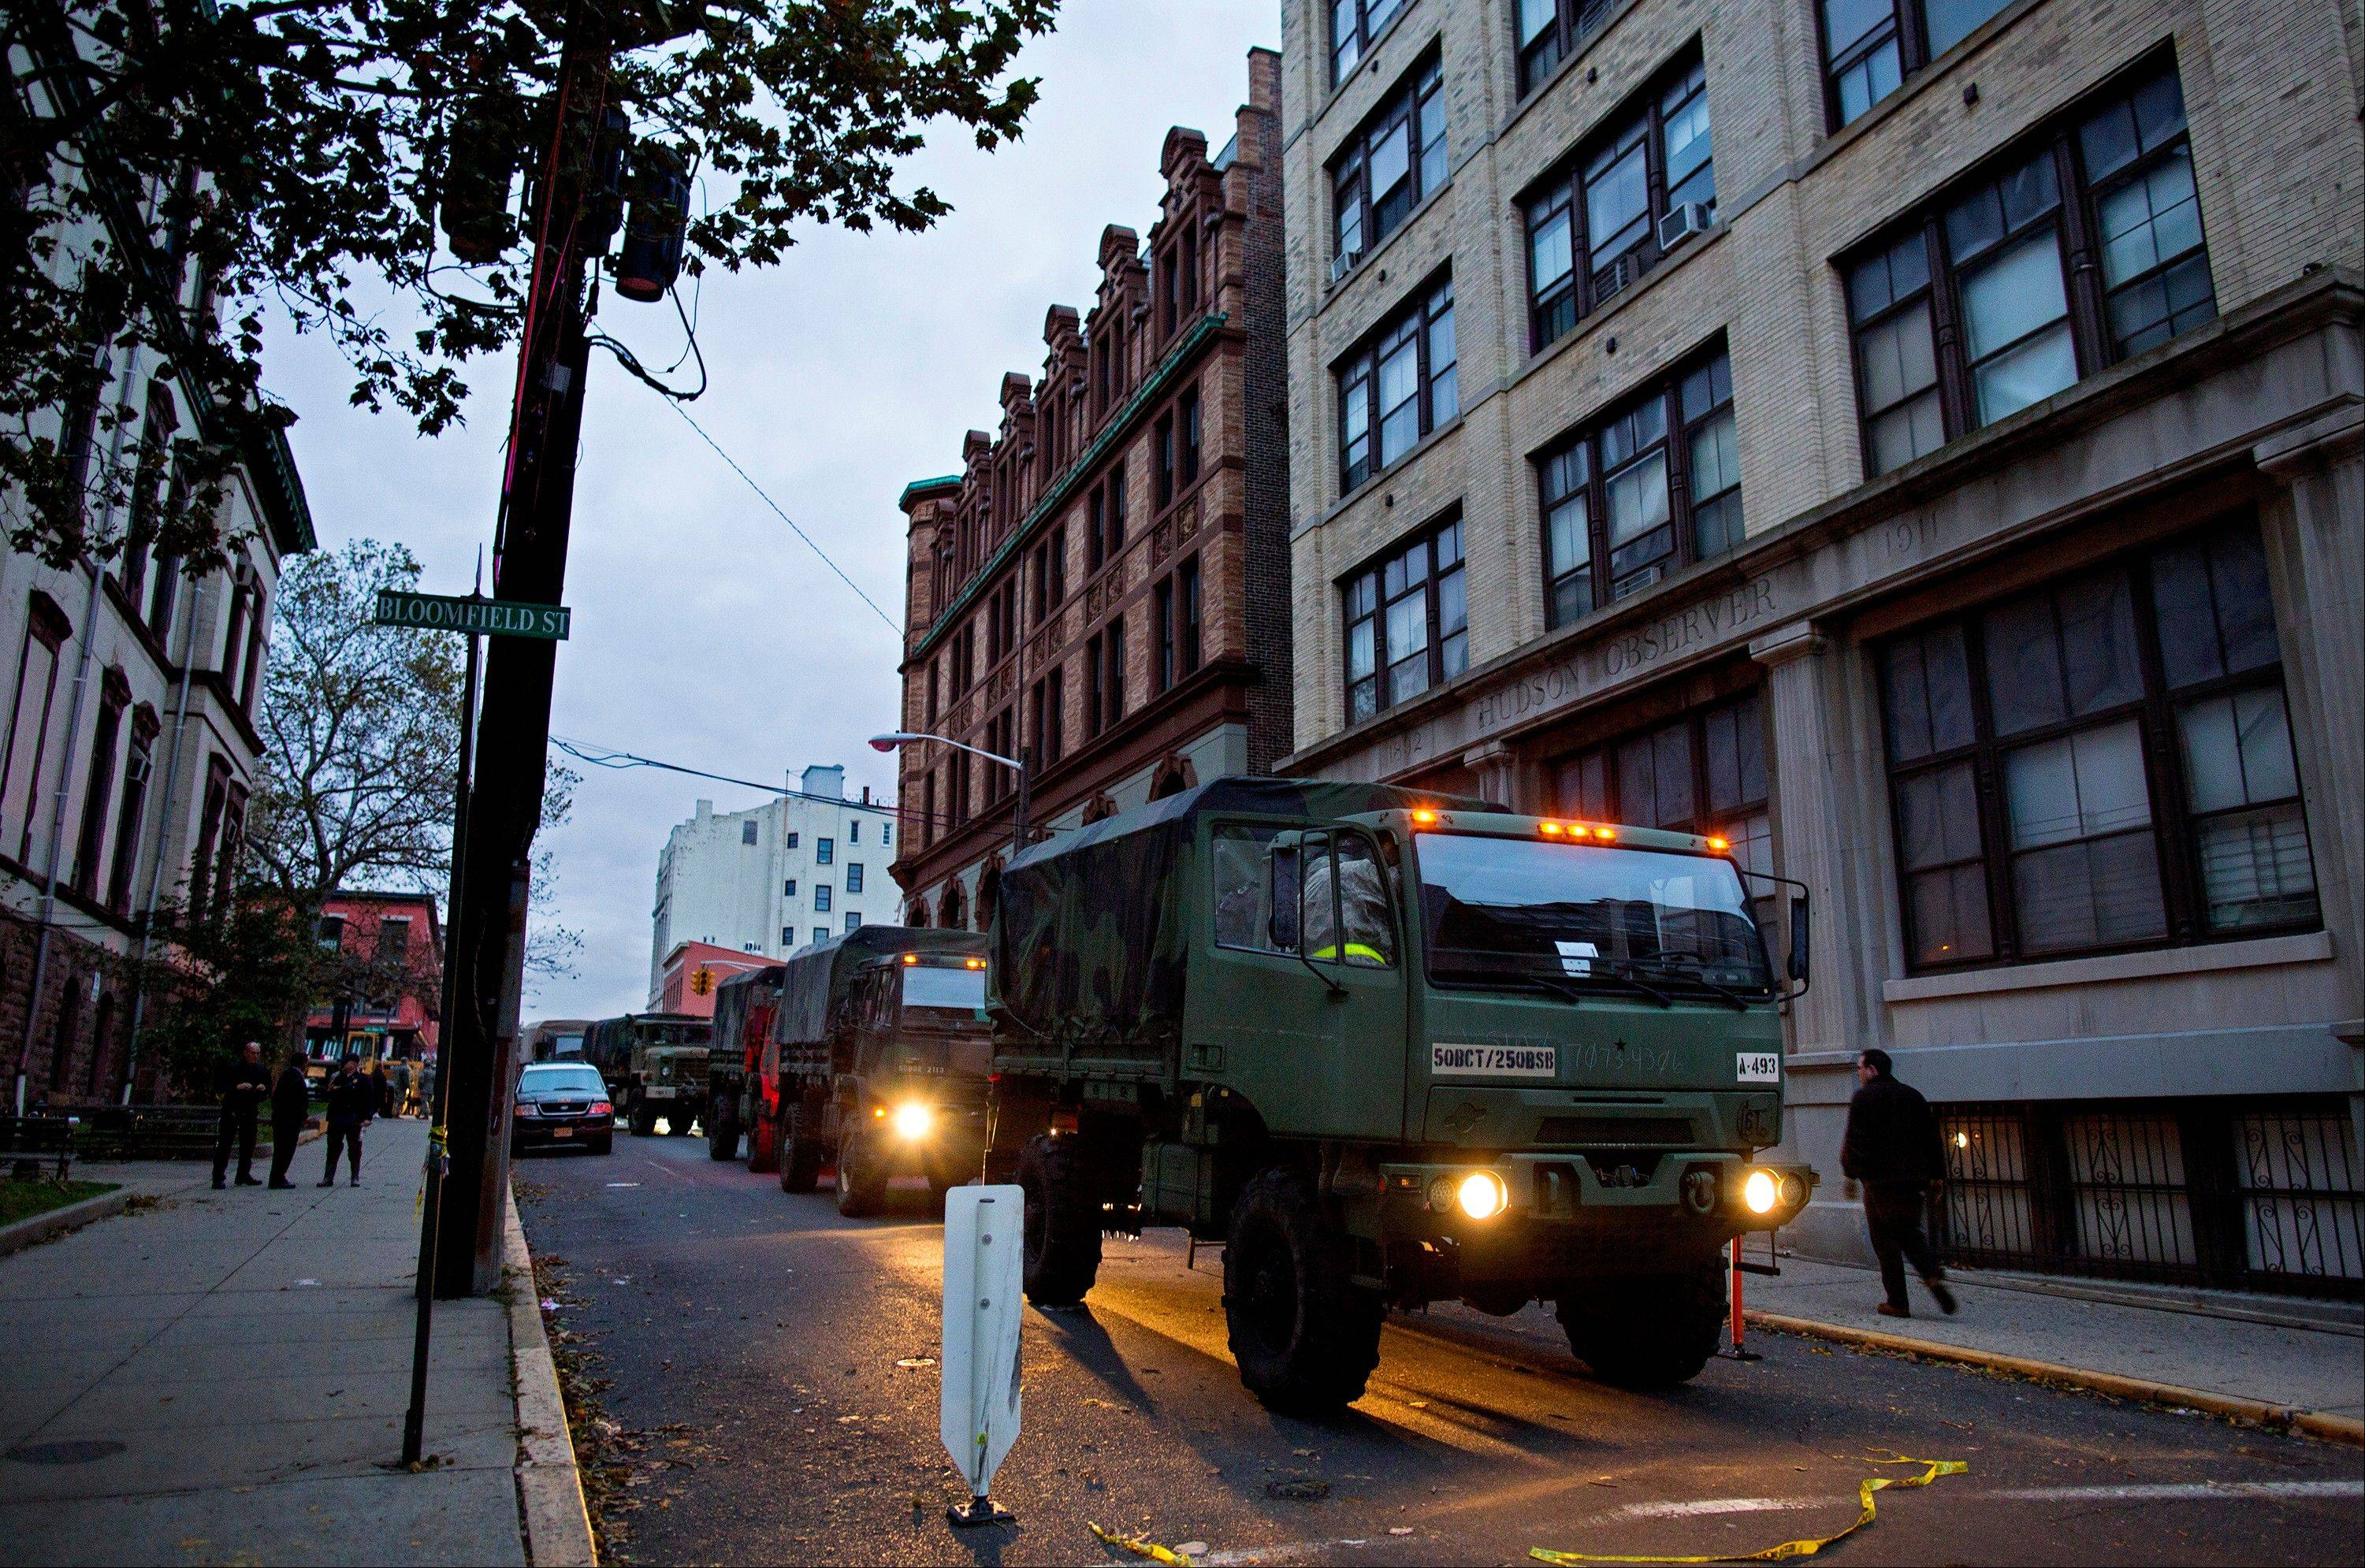 Members of the National Guard stand ready with large trucks used to pluck people from high water in Hoboken, N.J. Wednesday, Oct. 31, 2012 in the wake of superstorm Sandy. Parts of the city are still covered in standing water, trapping some residents in their homes.